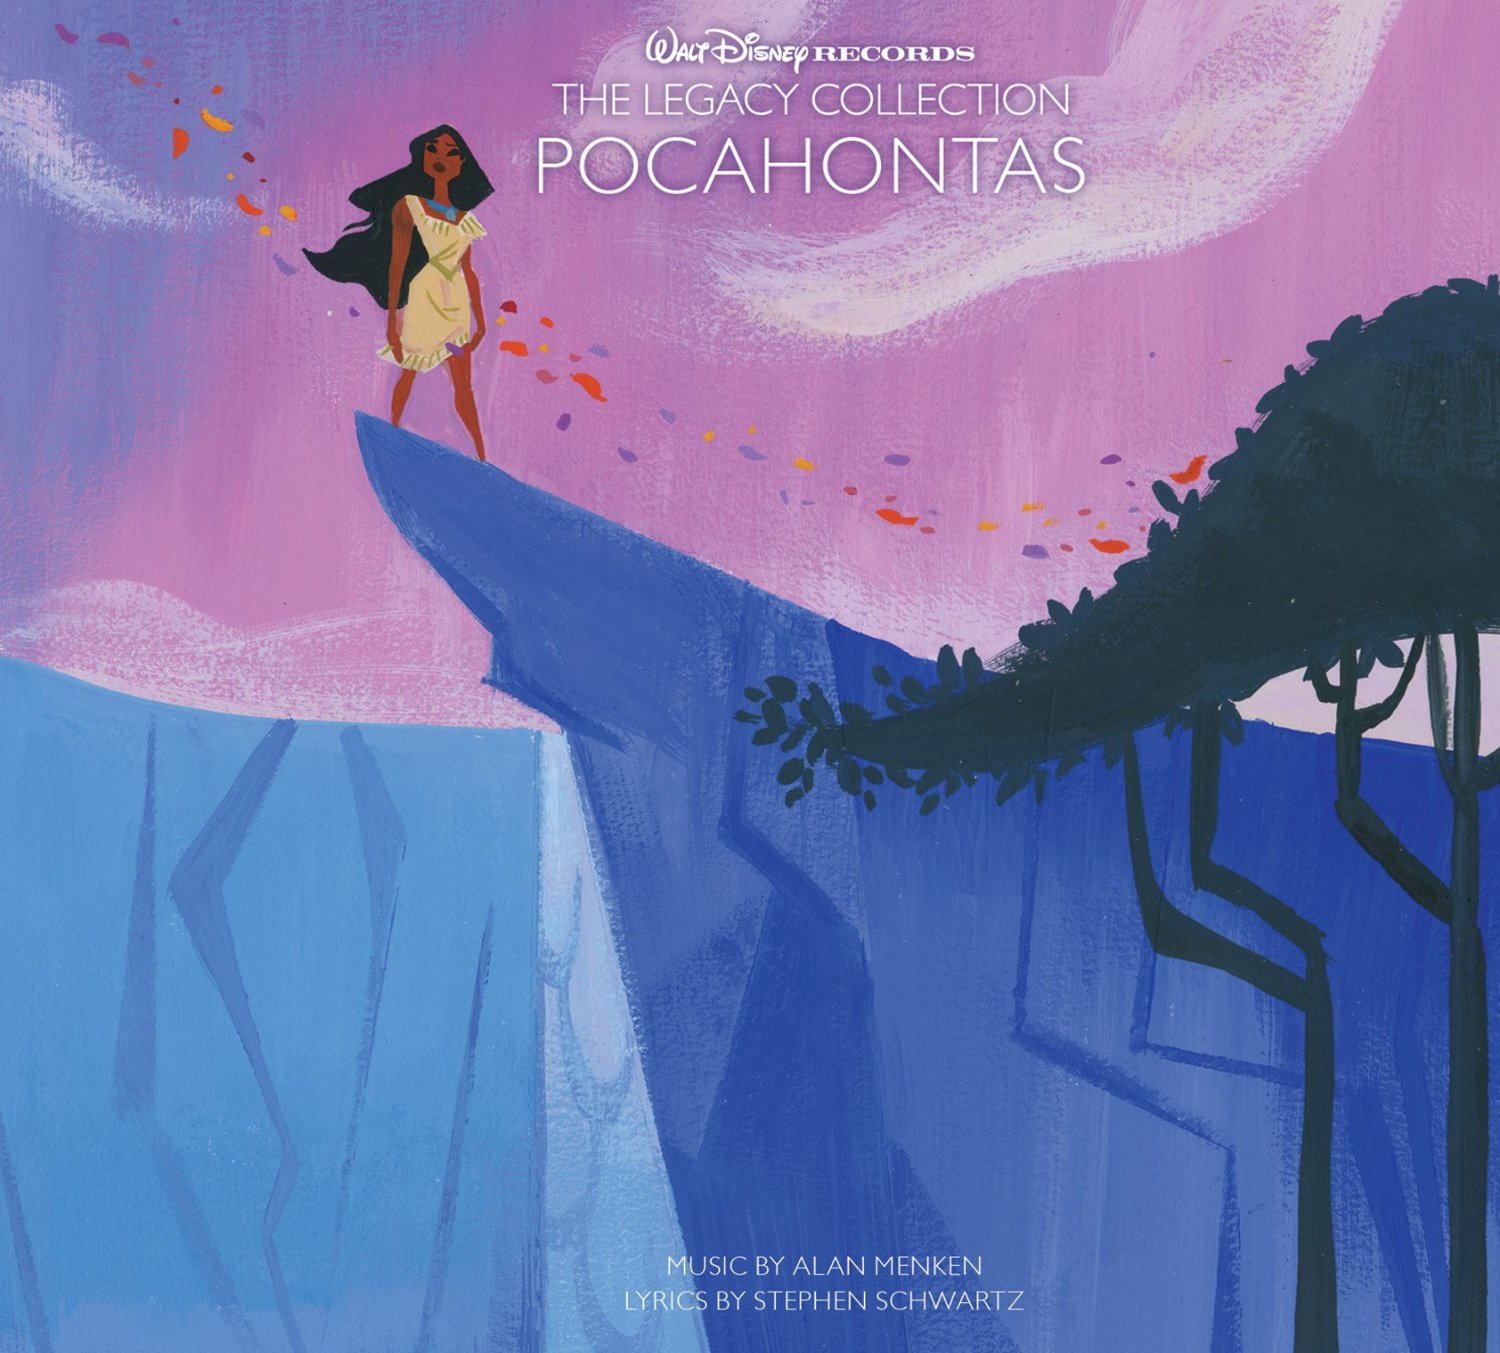 The Legacy Collection: Pocahontas Soundtrack Review